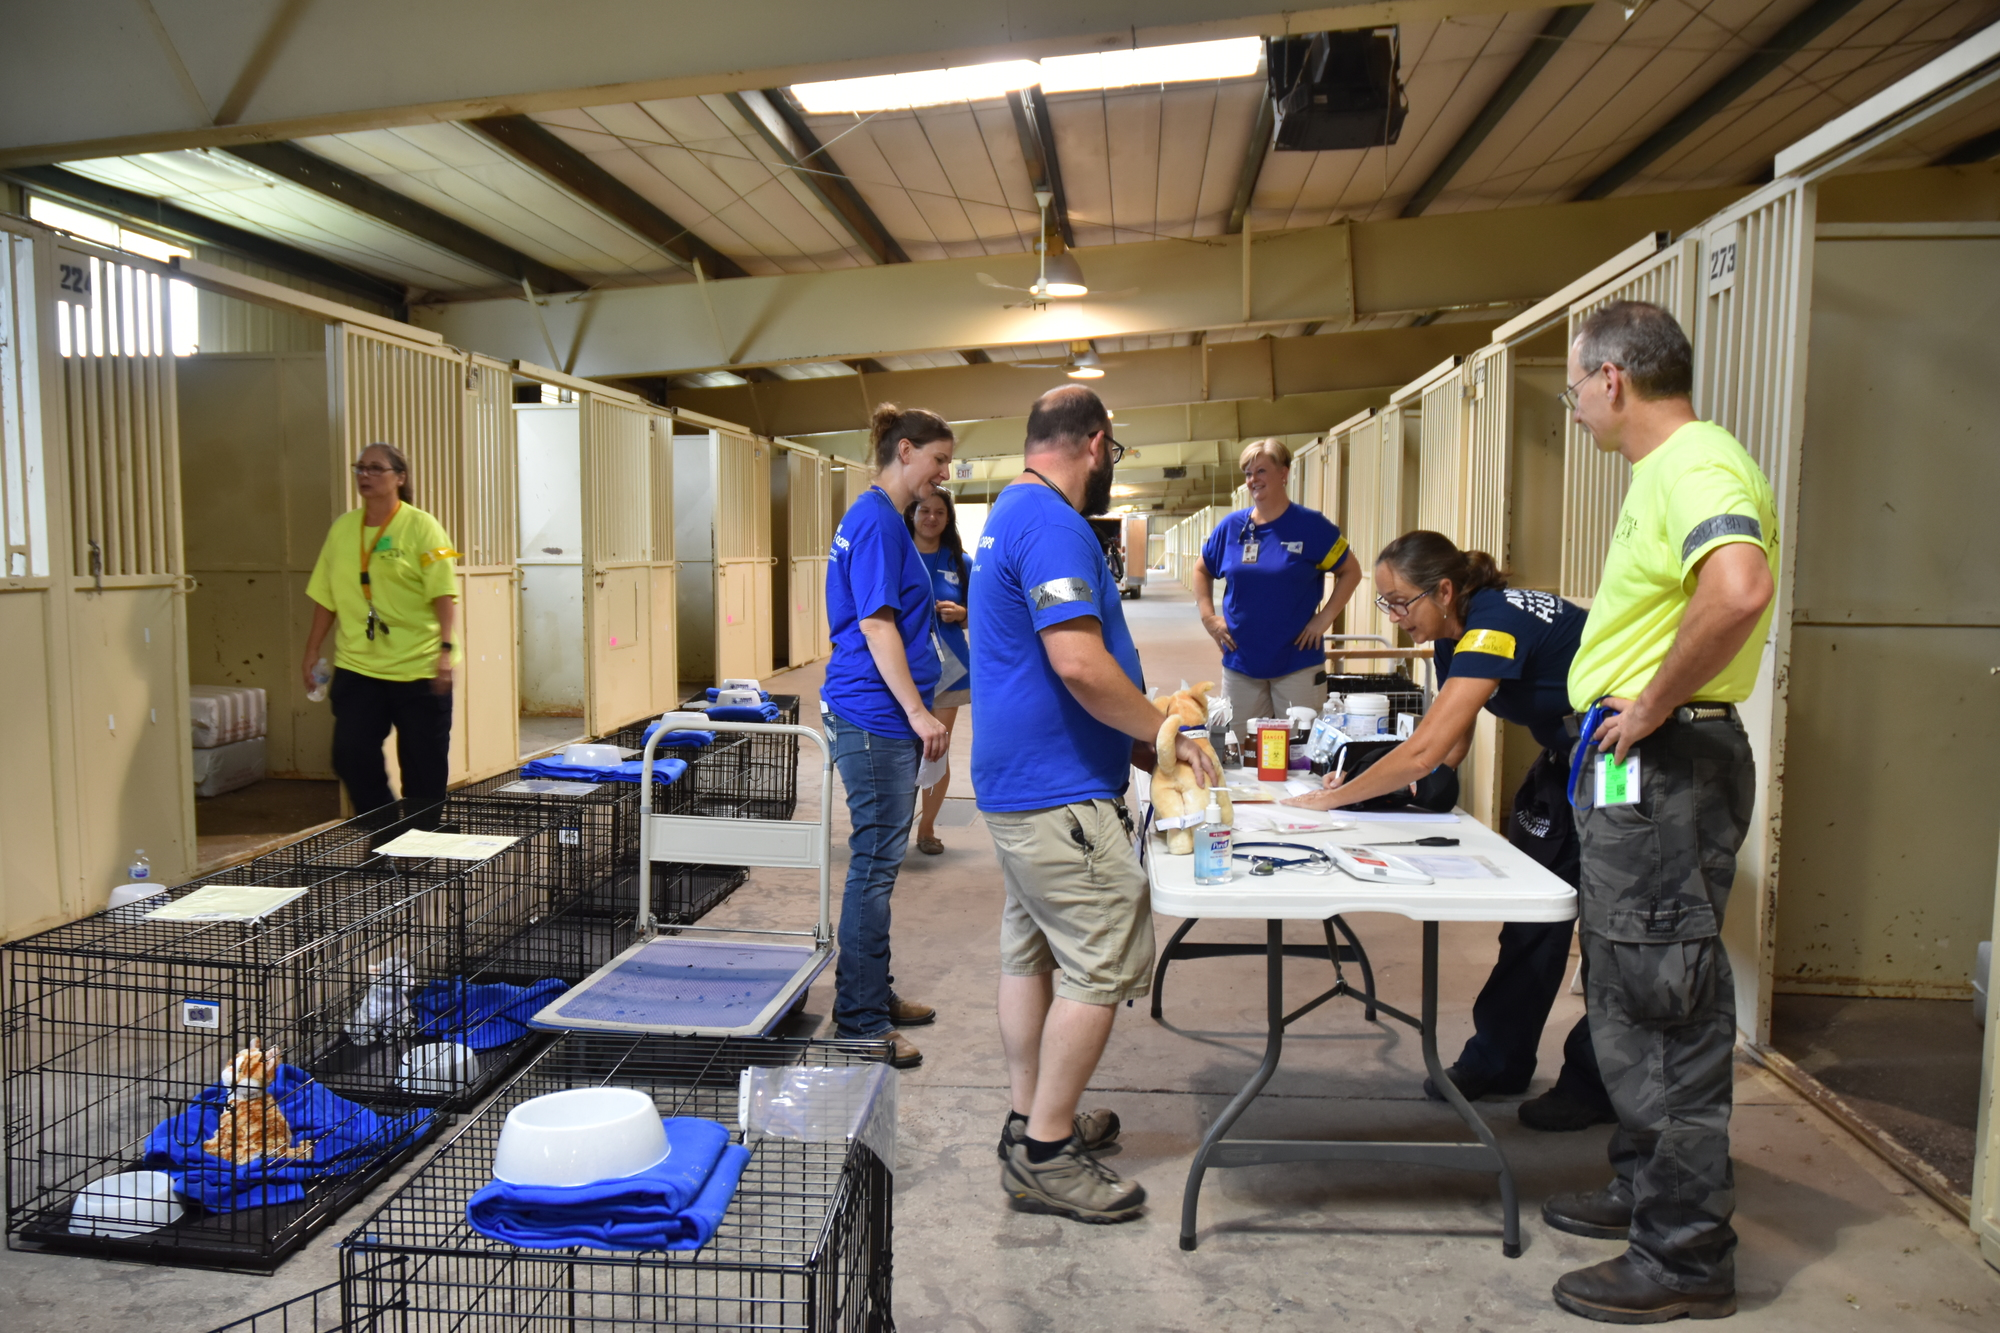 volunteers practice establishing a shelter for small animals